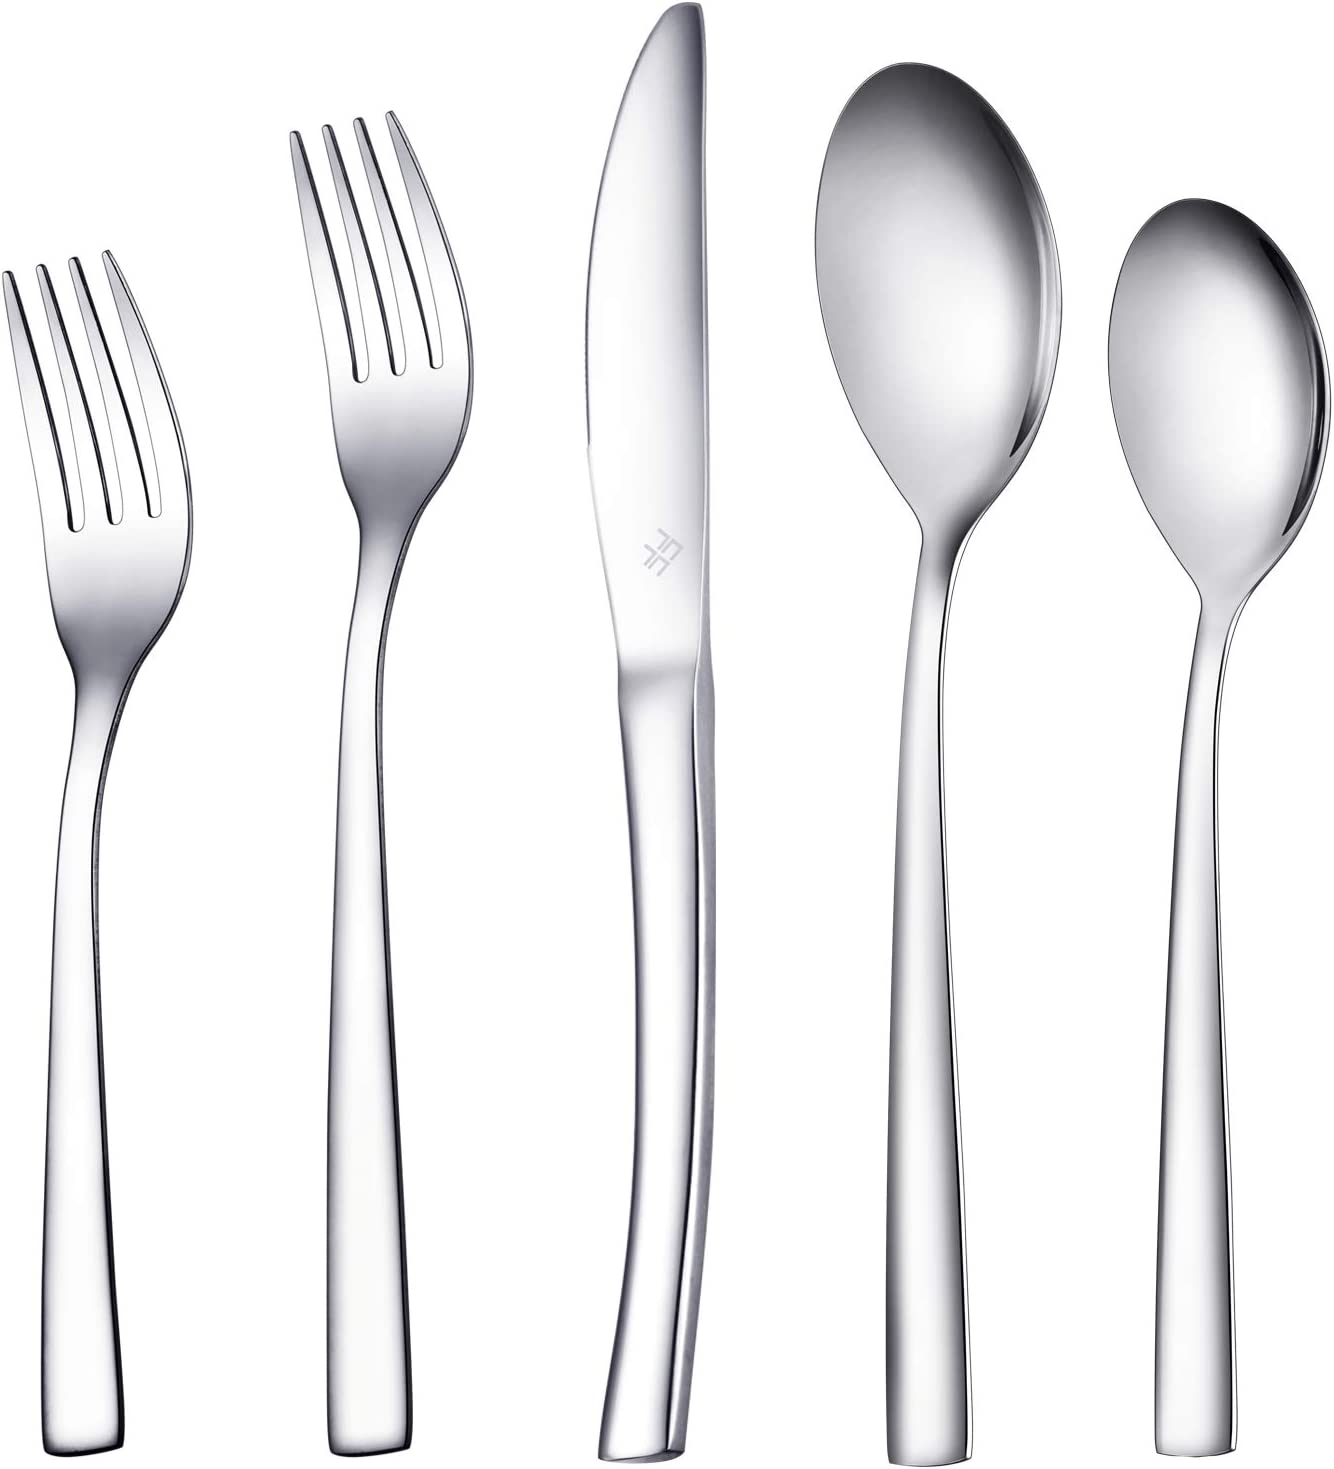 Ferfil Silverware Sets, 40-Piece Stainless Steel Flatware/Cutlery/Tableware Set Service for 8, Include Knife/Fork/Spoon, Mirror Polished, Dishwasher Safe